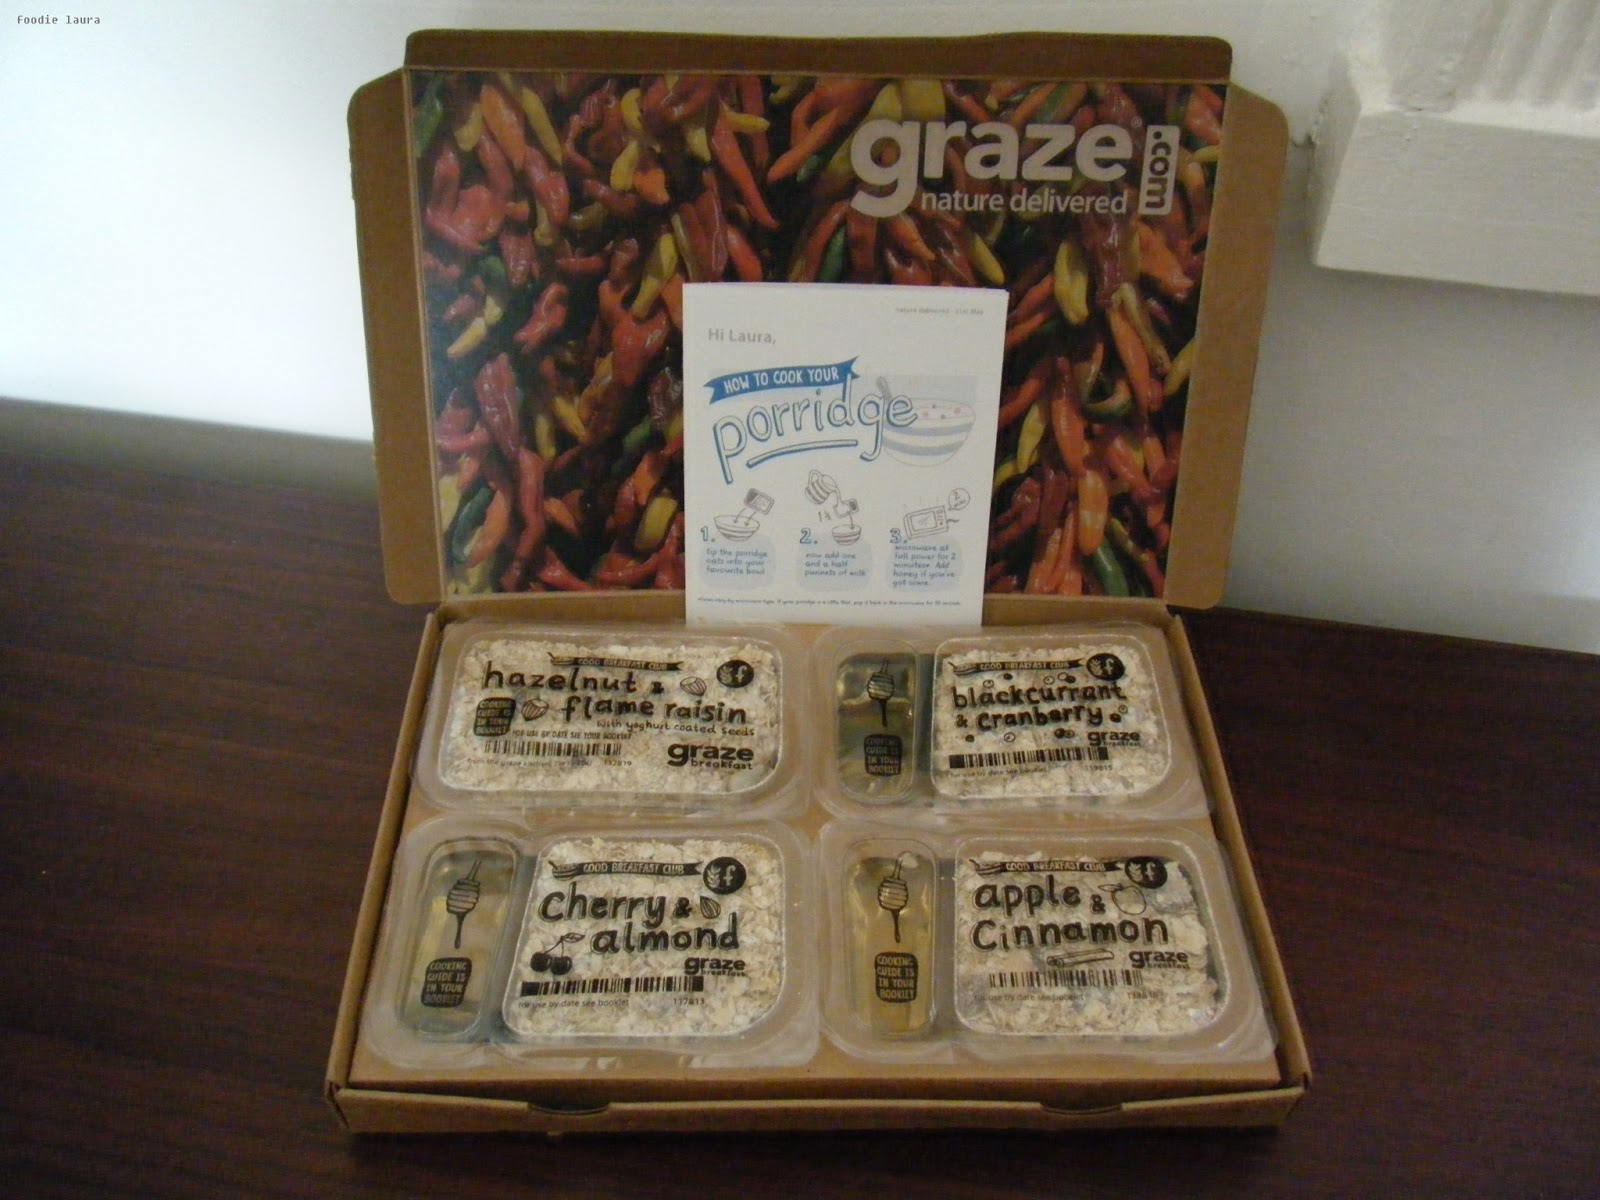 moderngamethrones.ga – FREE Graze Box. After your free box, you will automatically continue getting regular boxes unless you cancel your deliveries online (which you can do at any time). 7. This offer may not be redeemed in conjunction with any other offer and is limited .